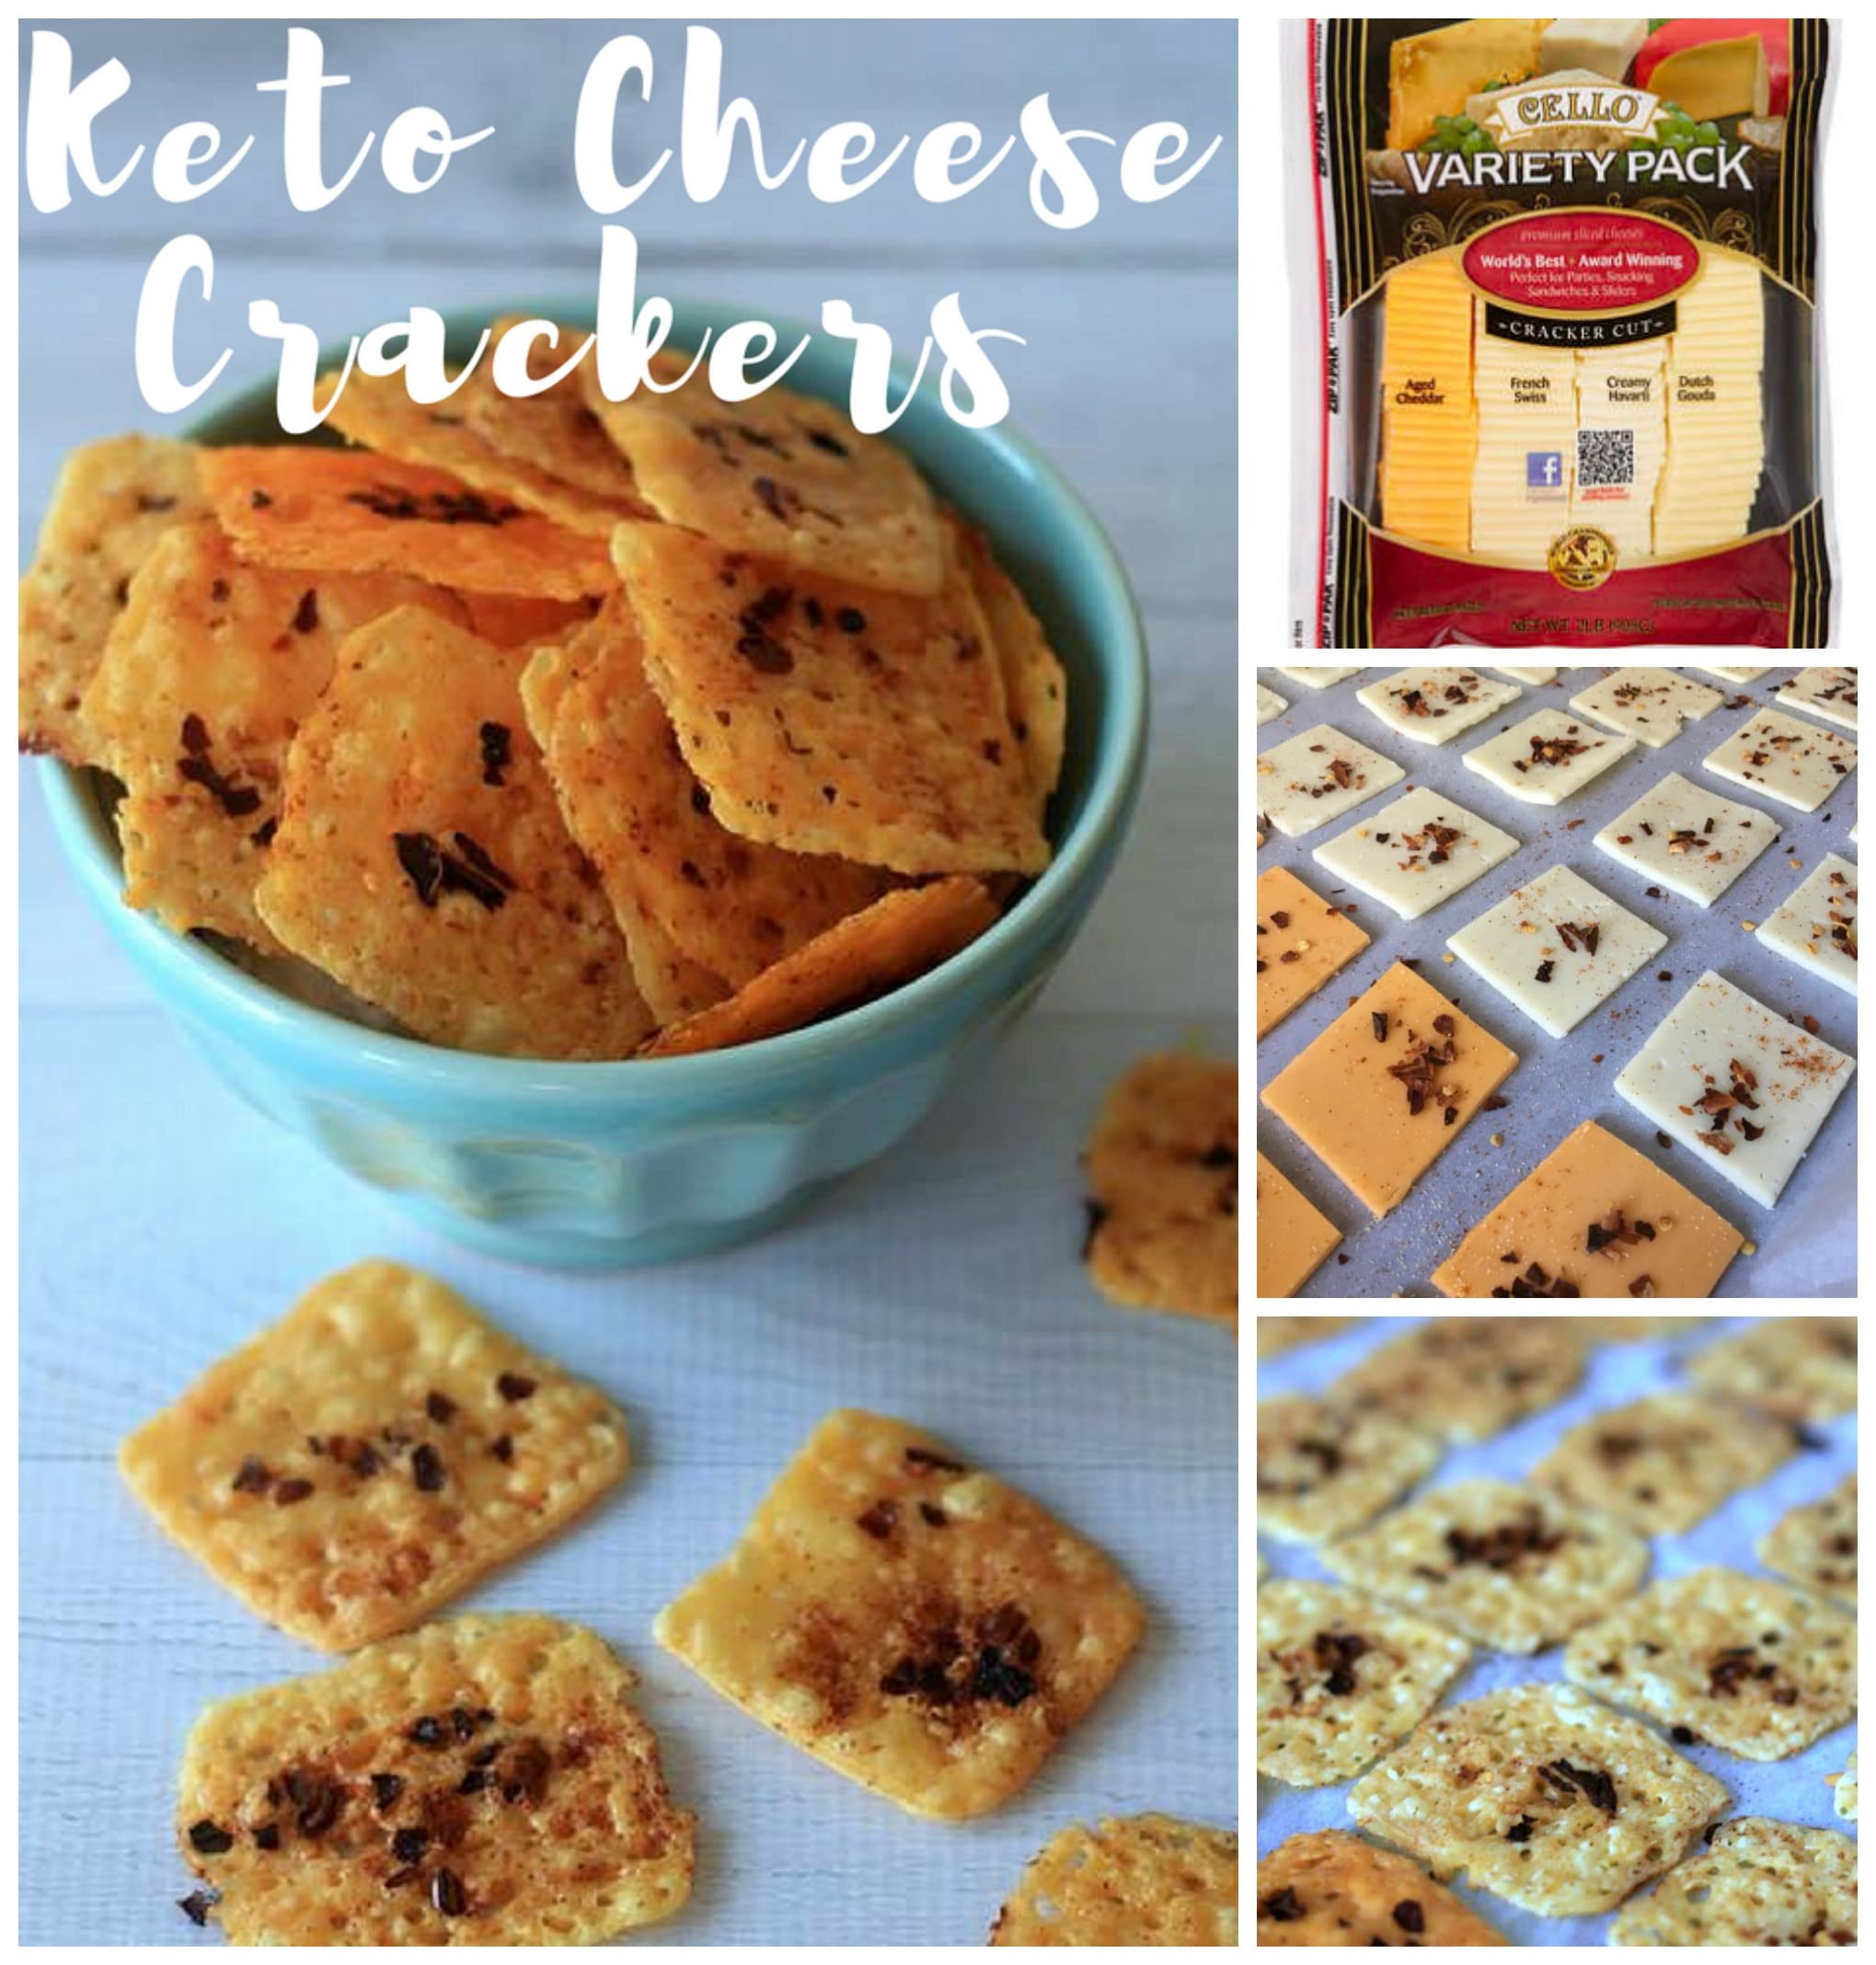 keto cheese crackers / low carb cheese crackers / ketogenic cheese crackers / keto snack crackers